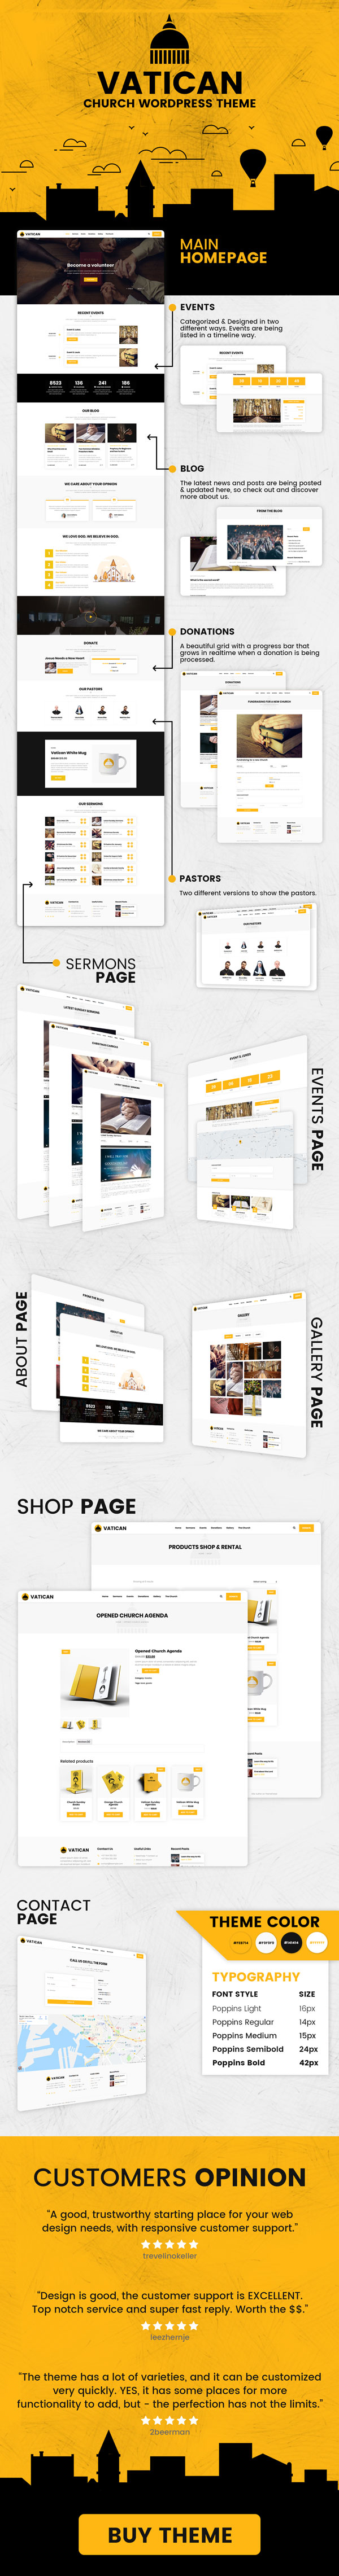 Vatican - Church WordPress Theme - 2